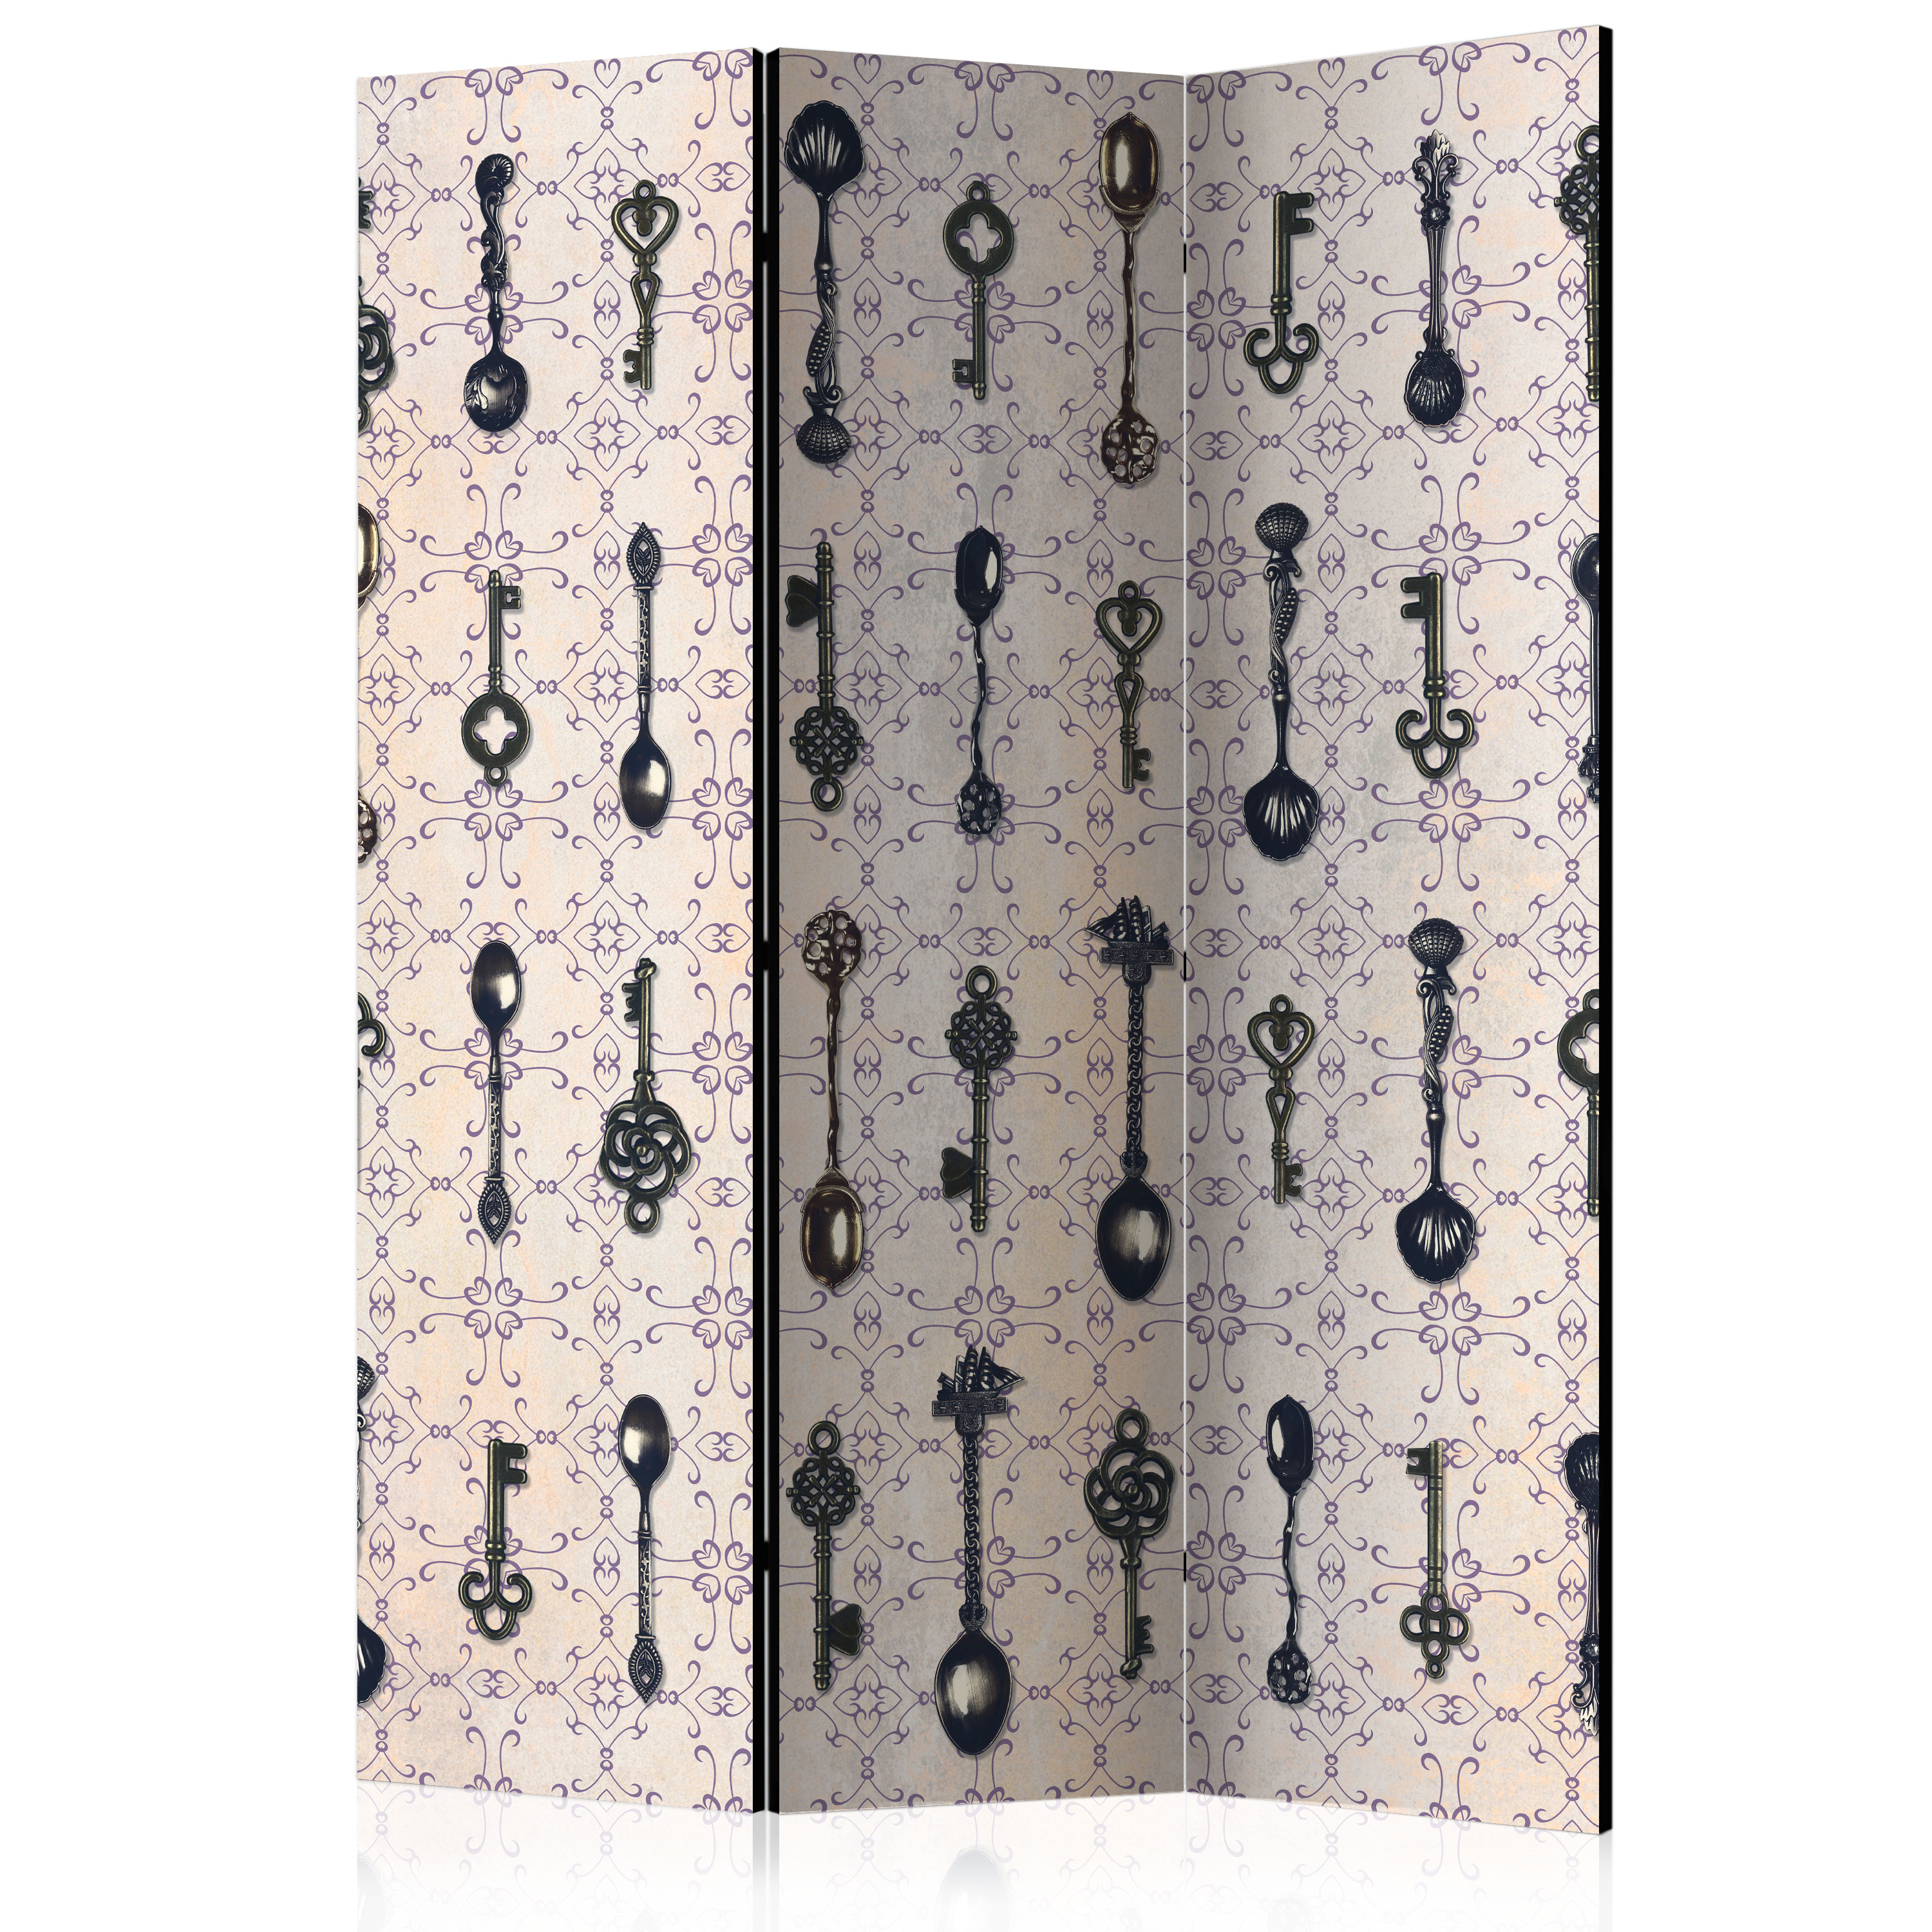 Paravento - Retro Style: Silver Spoons [Room Dividers] 135X172 cm